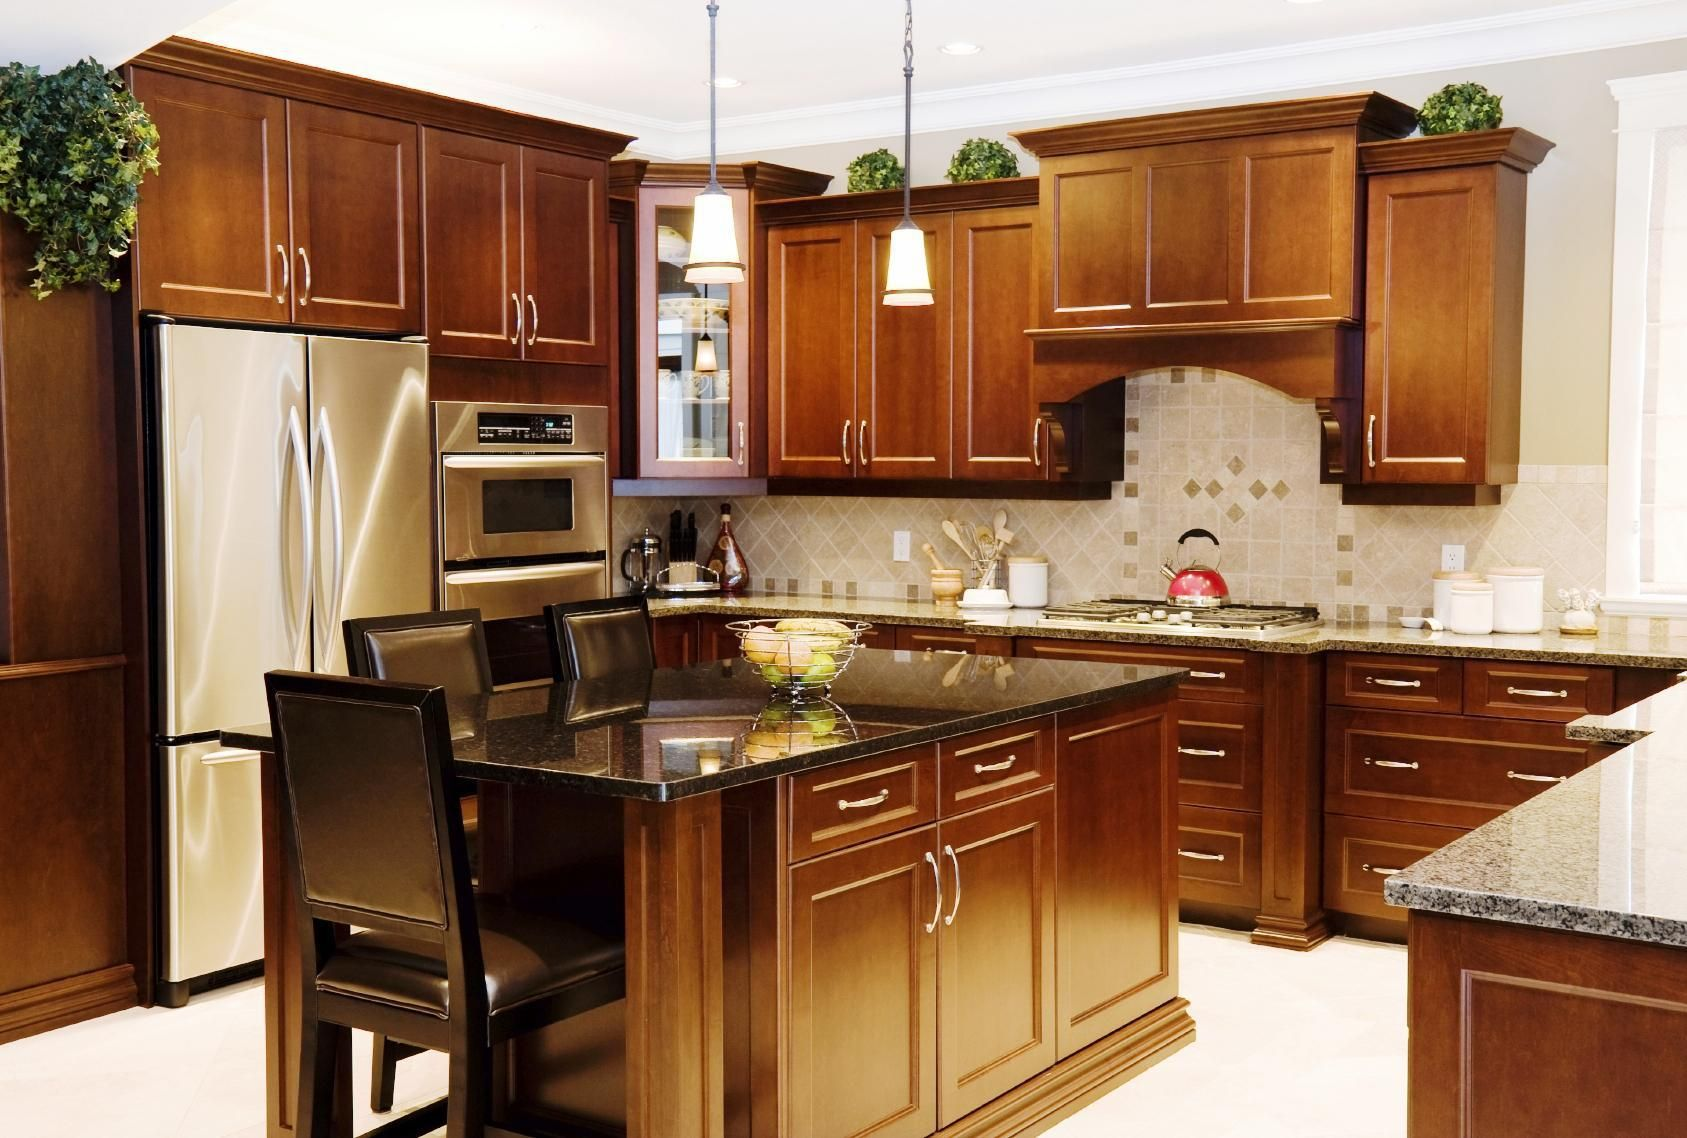 Amazing Tiny House Kitchen Design Ideas For You  Remodeling Ideas Interesting Small Remodeled Kitchens Ideas Decorating Design